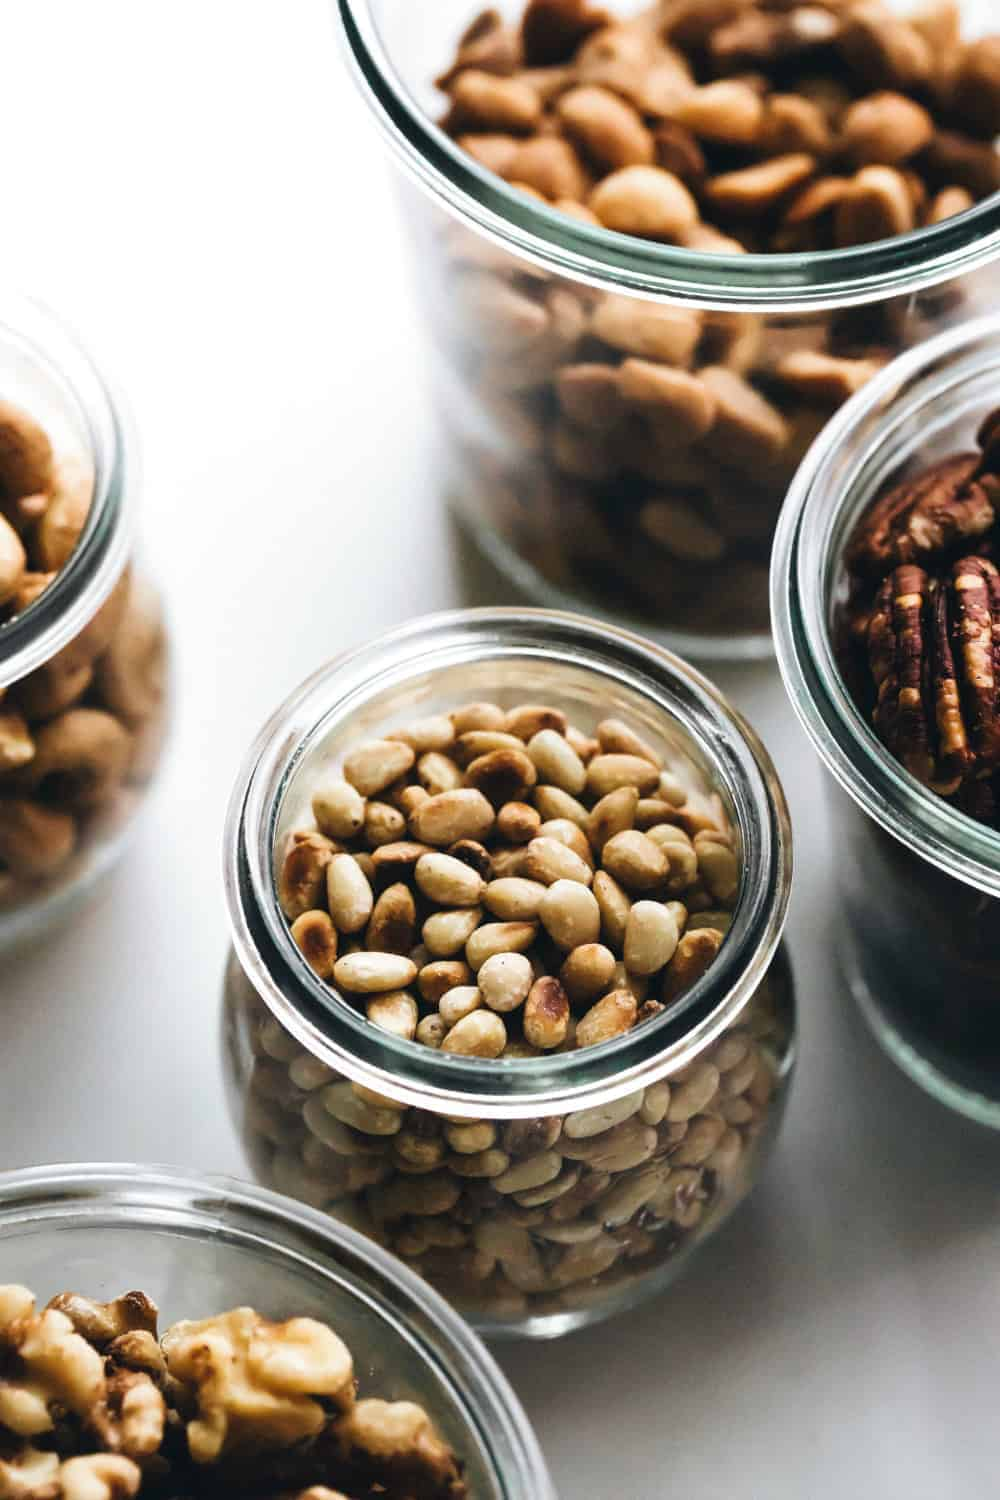 Toasted pine nuts in a glass jar